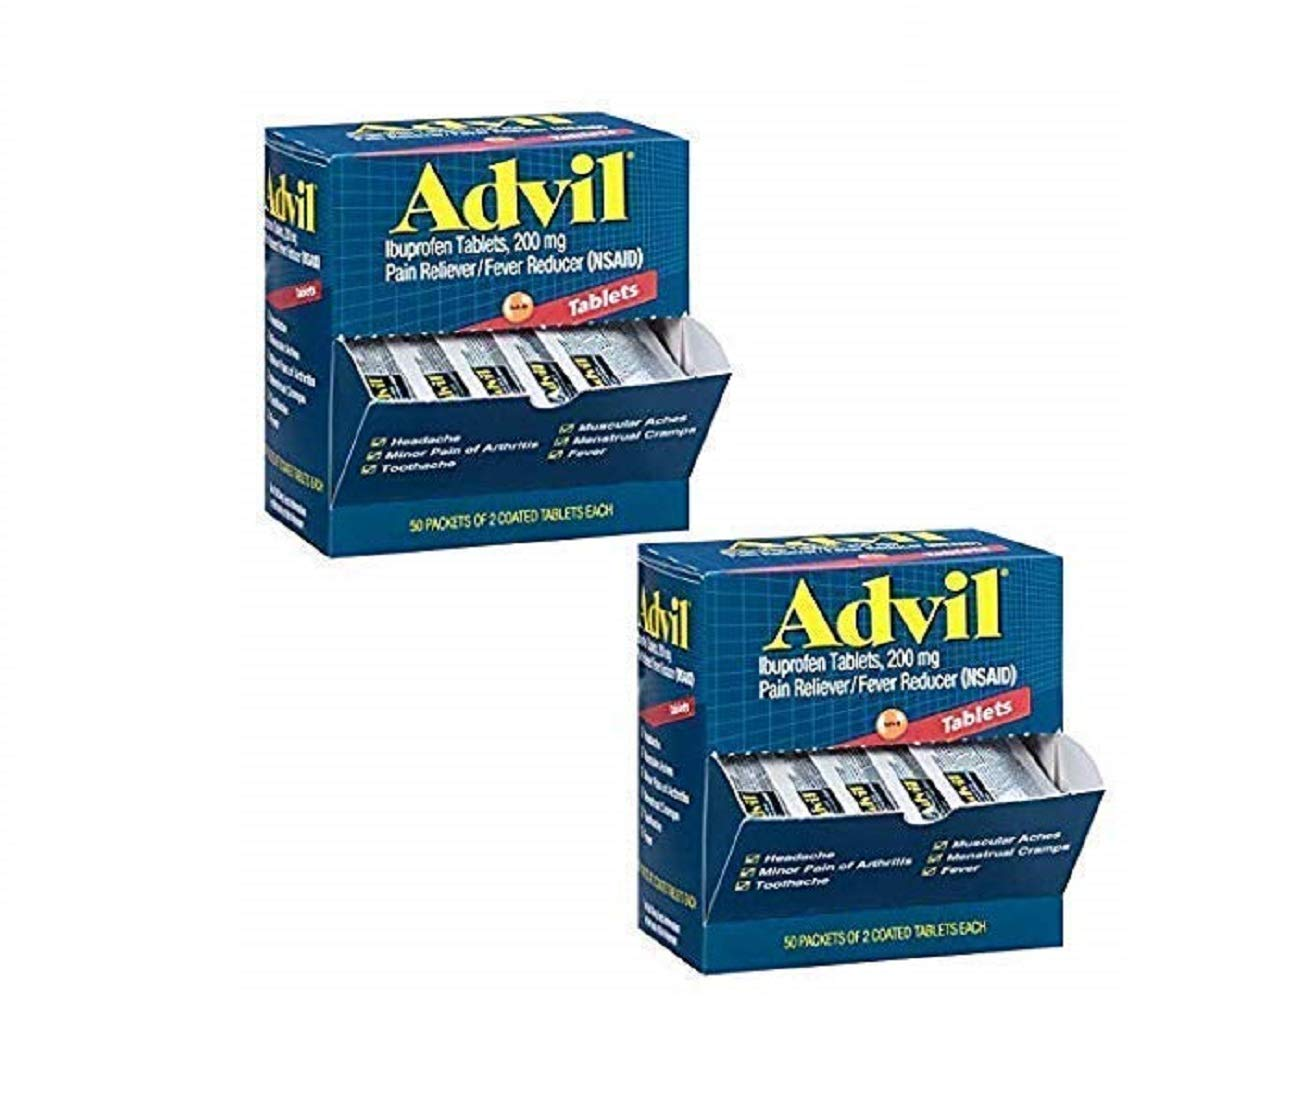 Ibuprofen Individually Wrapped Medication, 50 Doses of Two Tablets, 200 mg (2 Pack) by Advil